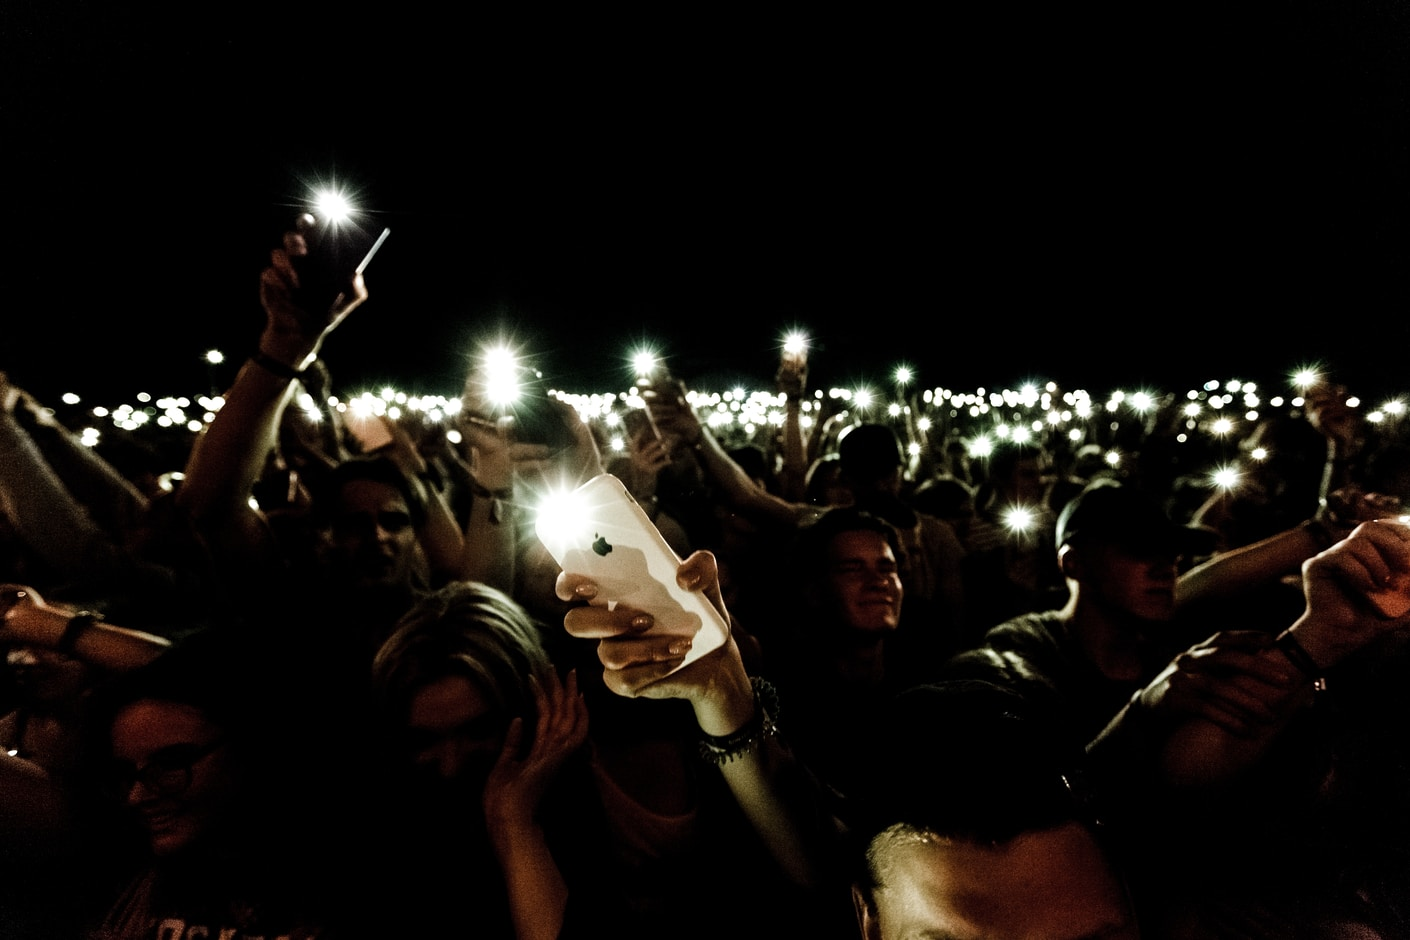 Similarity of this culture and bacteria crowd holding smartphone while in flashlight